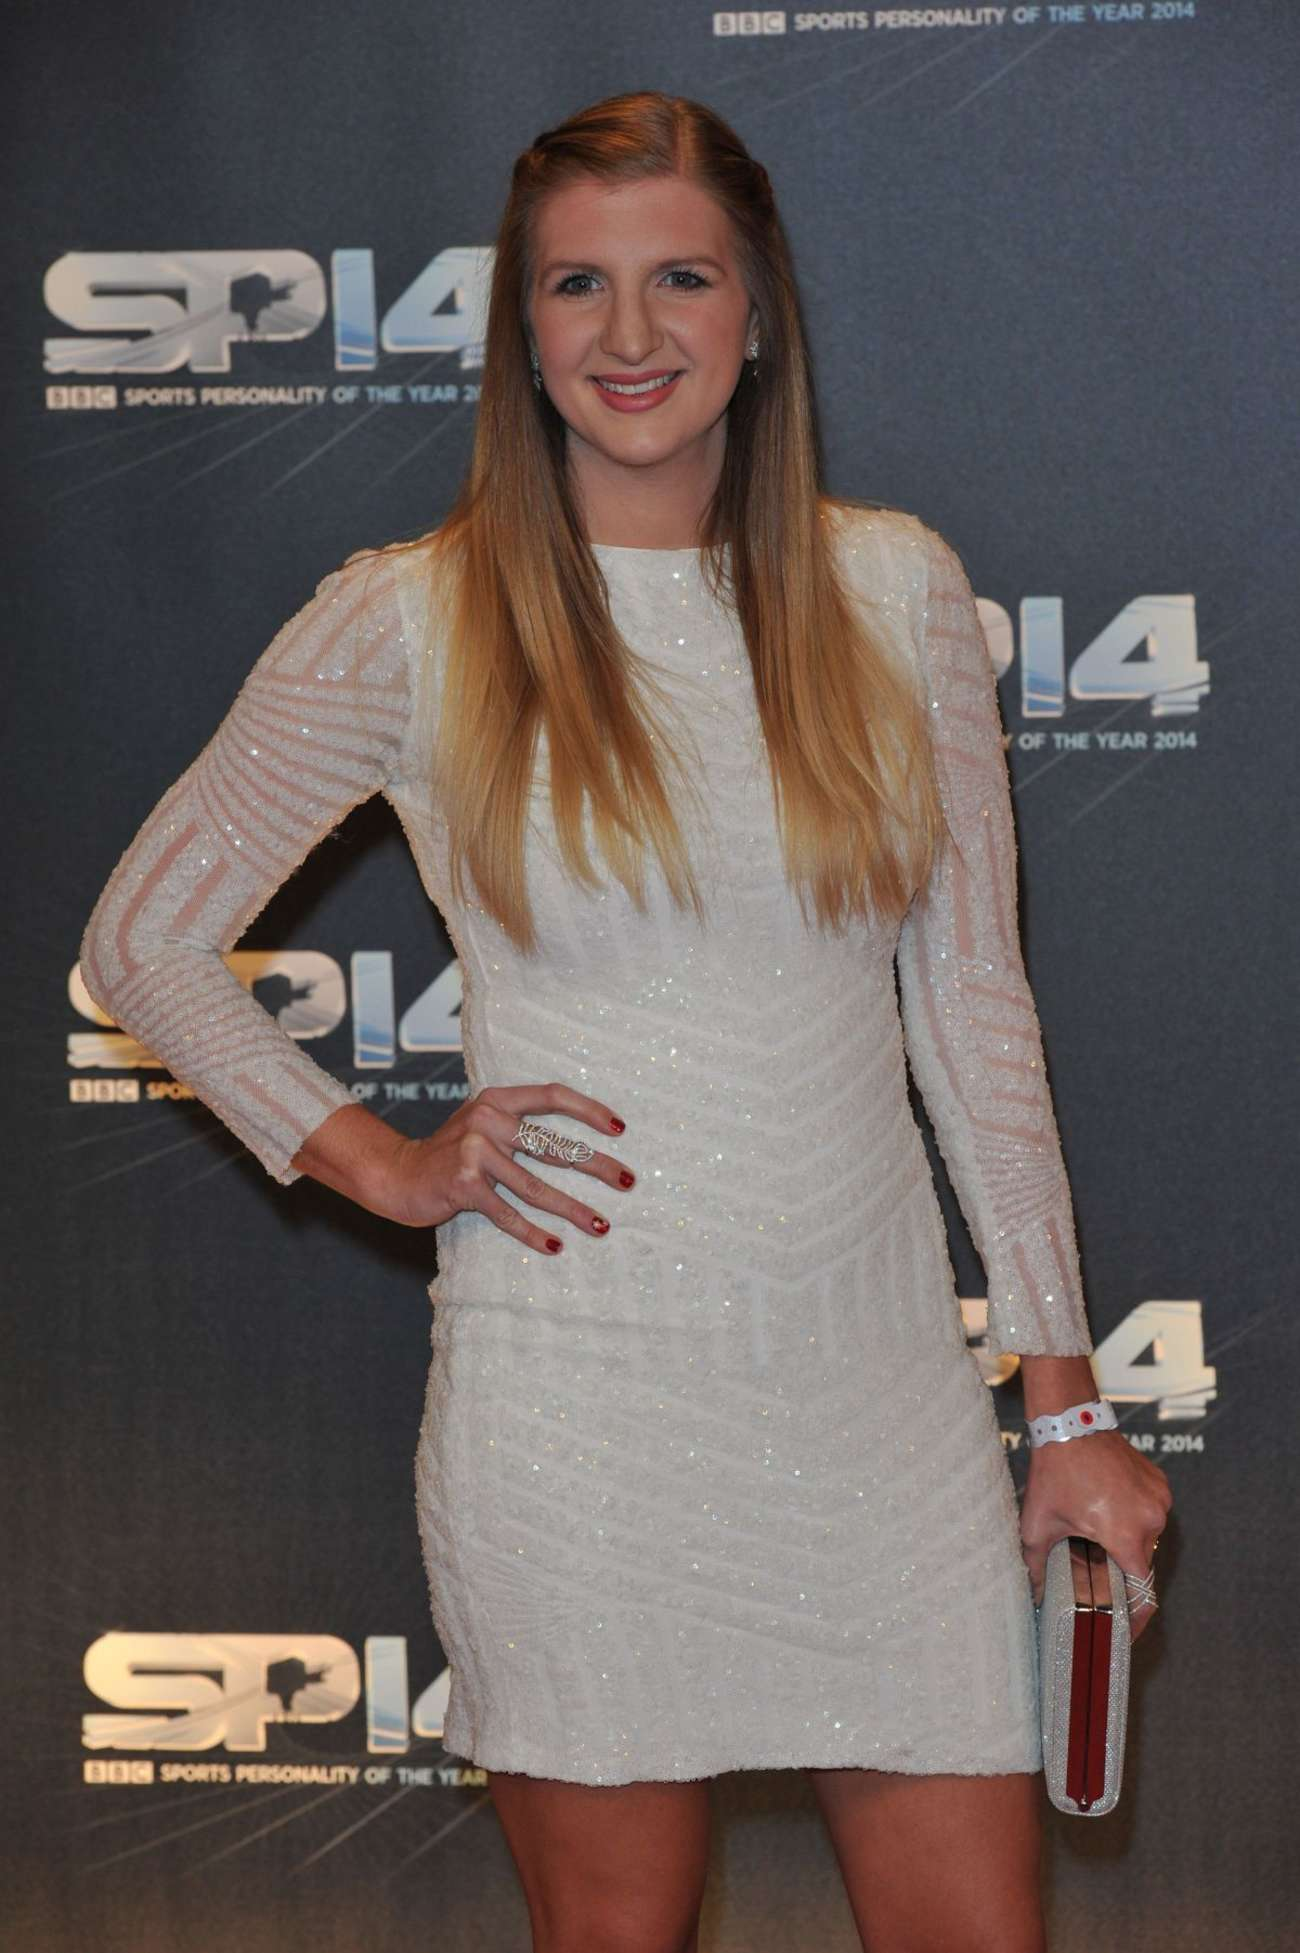 Rebecca Adlington BBC Sports Personality of the Year Awards in Glasgow